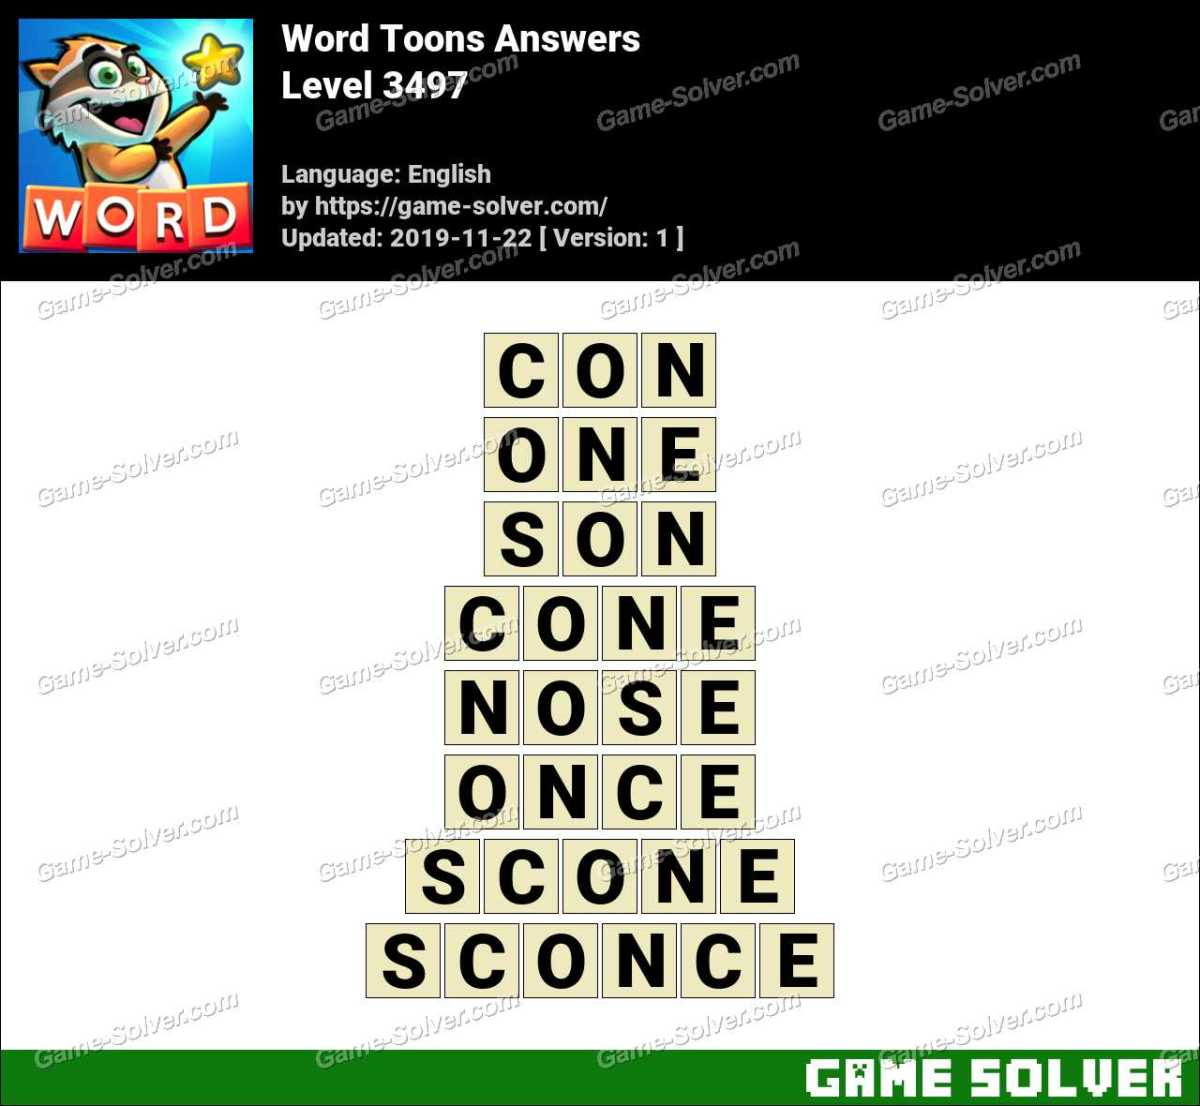 Word Toons Level 3497 Answers